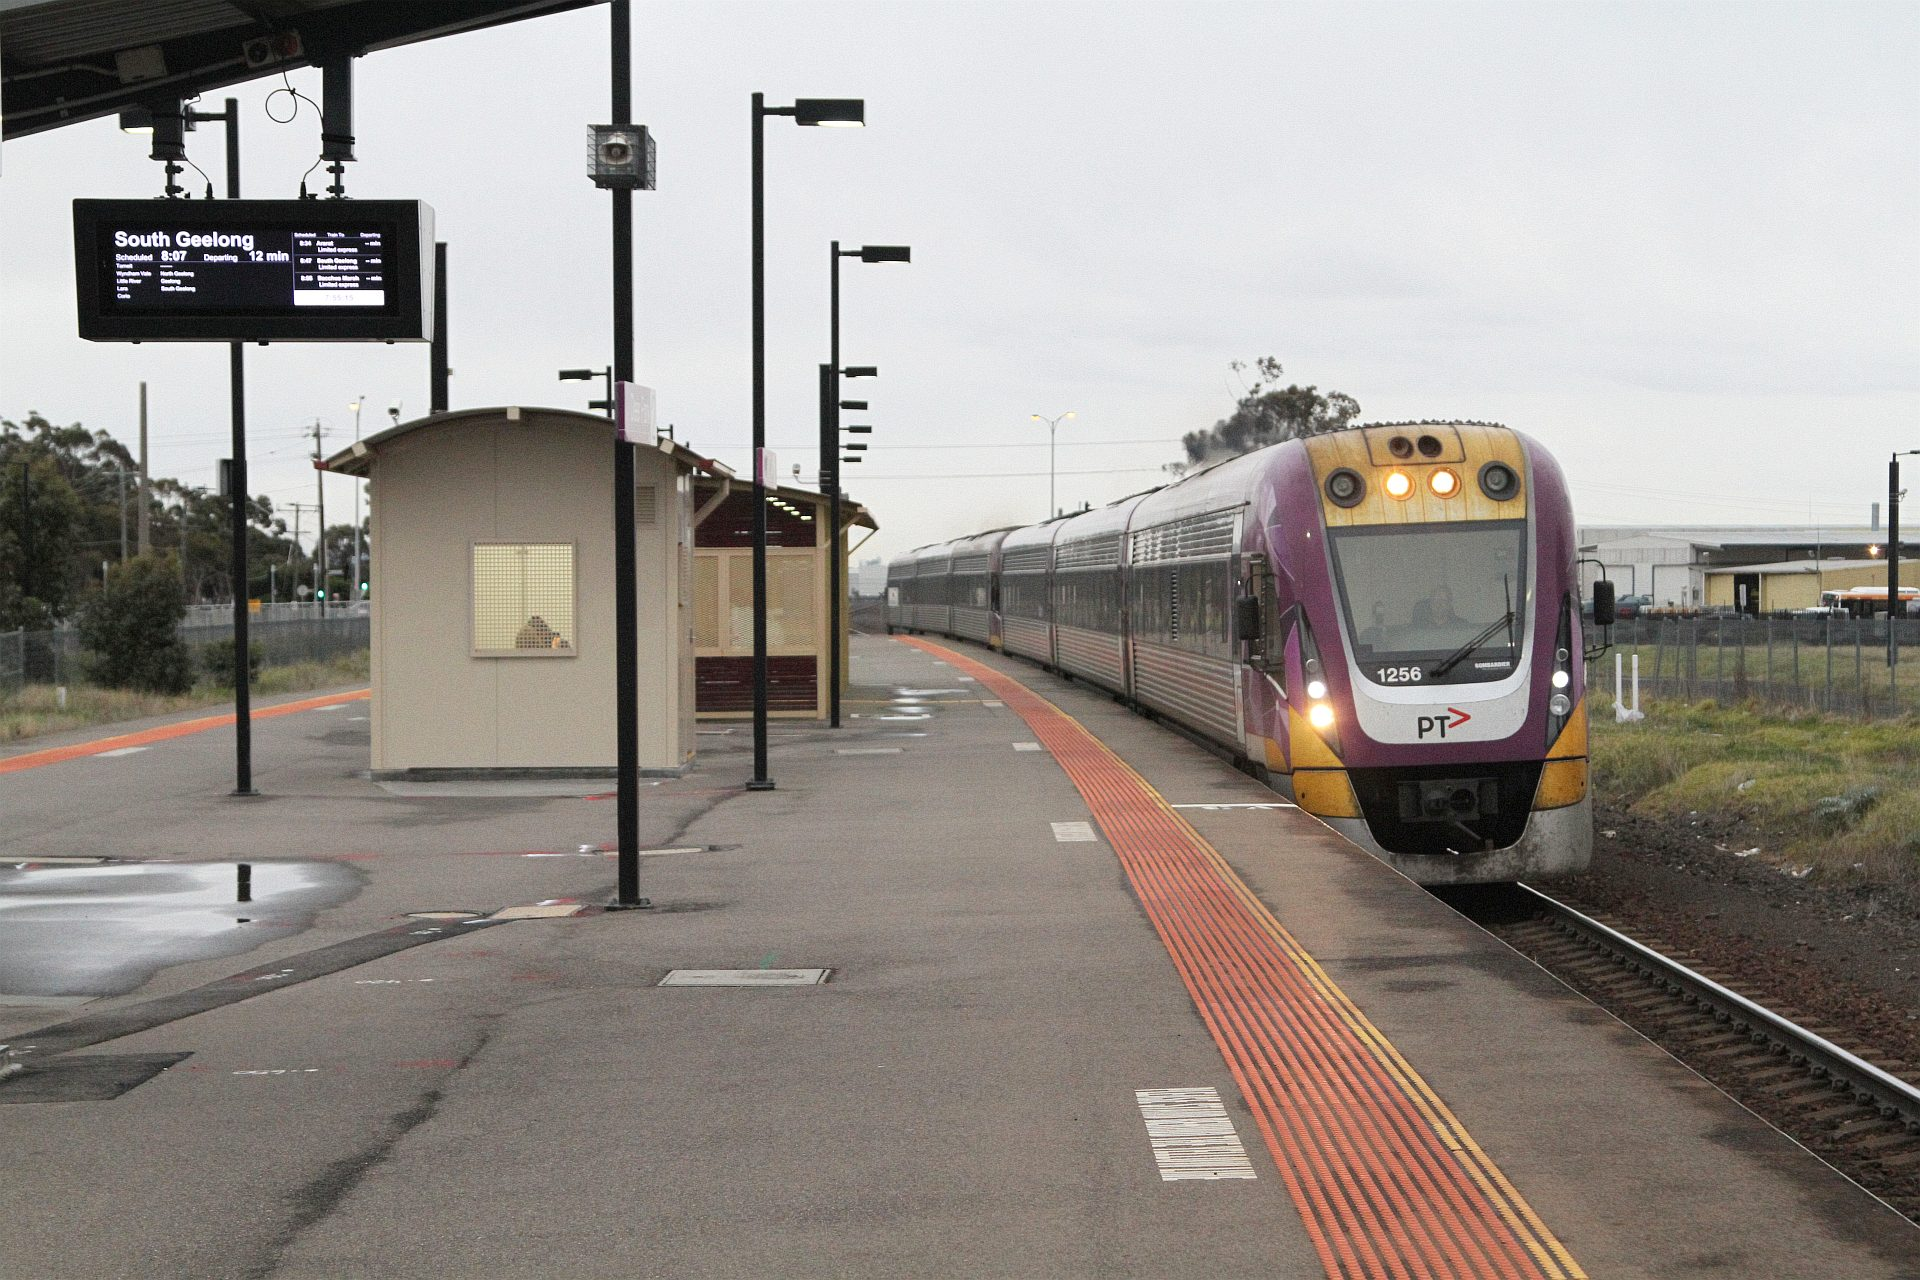 Vlocity Vl56 Leads A Classmate Express Through Deer Park Station On The Down Wongm S Rail Gallery